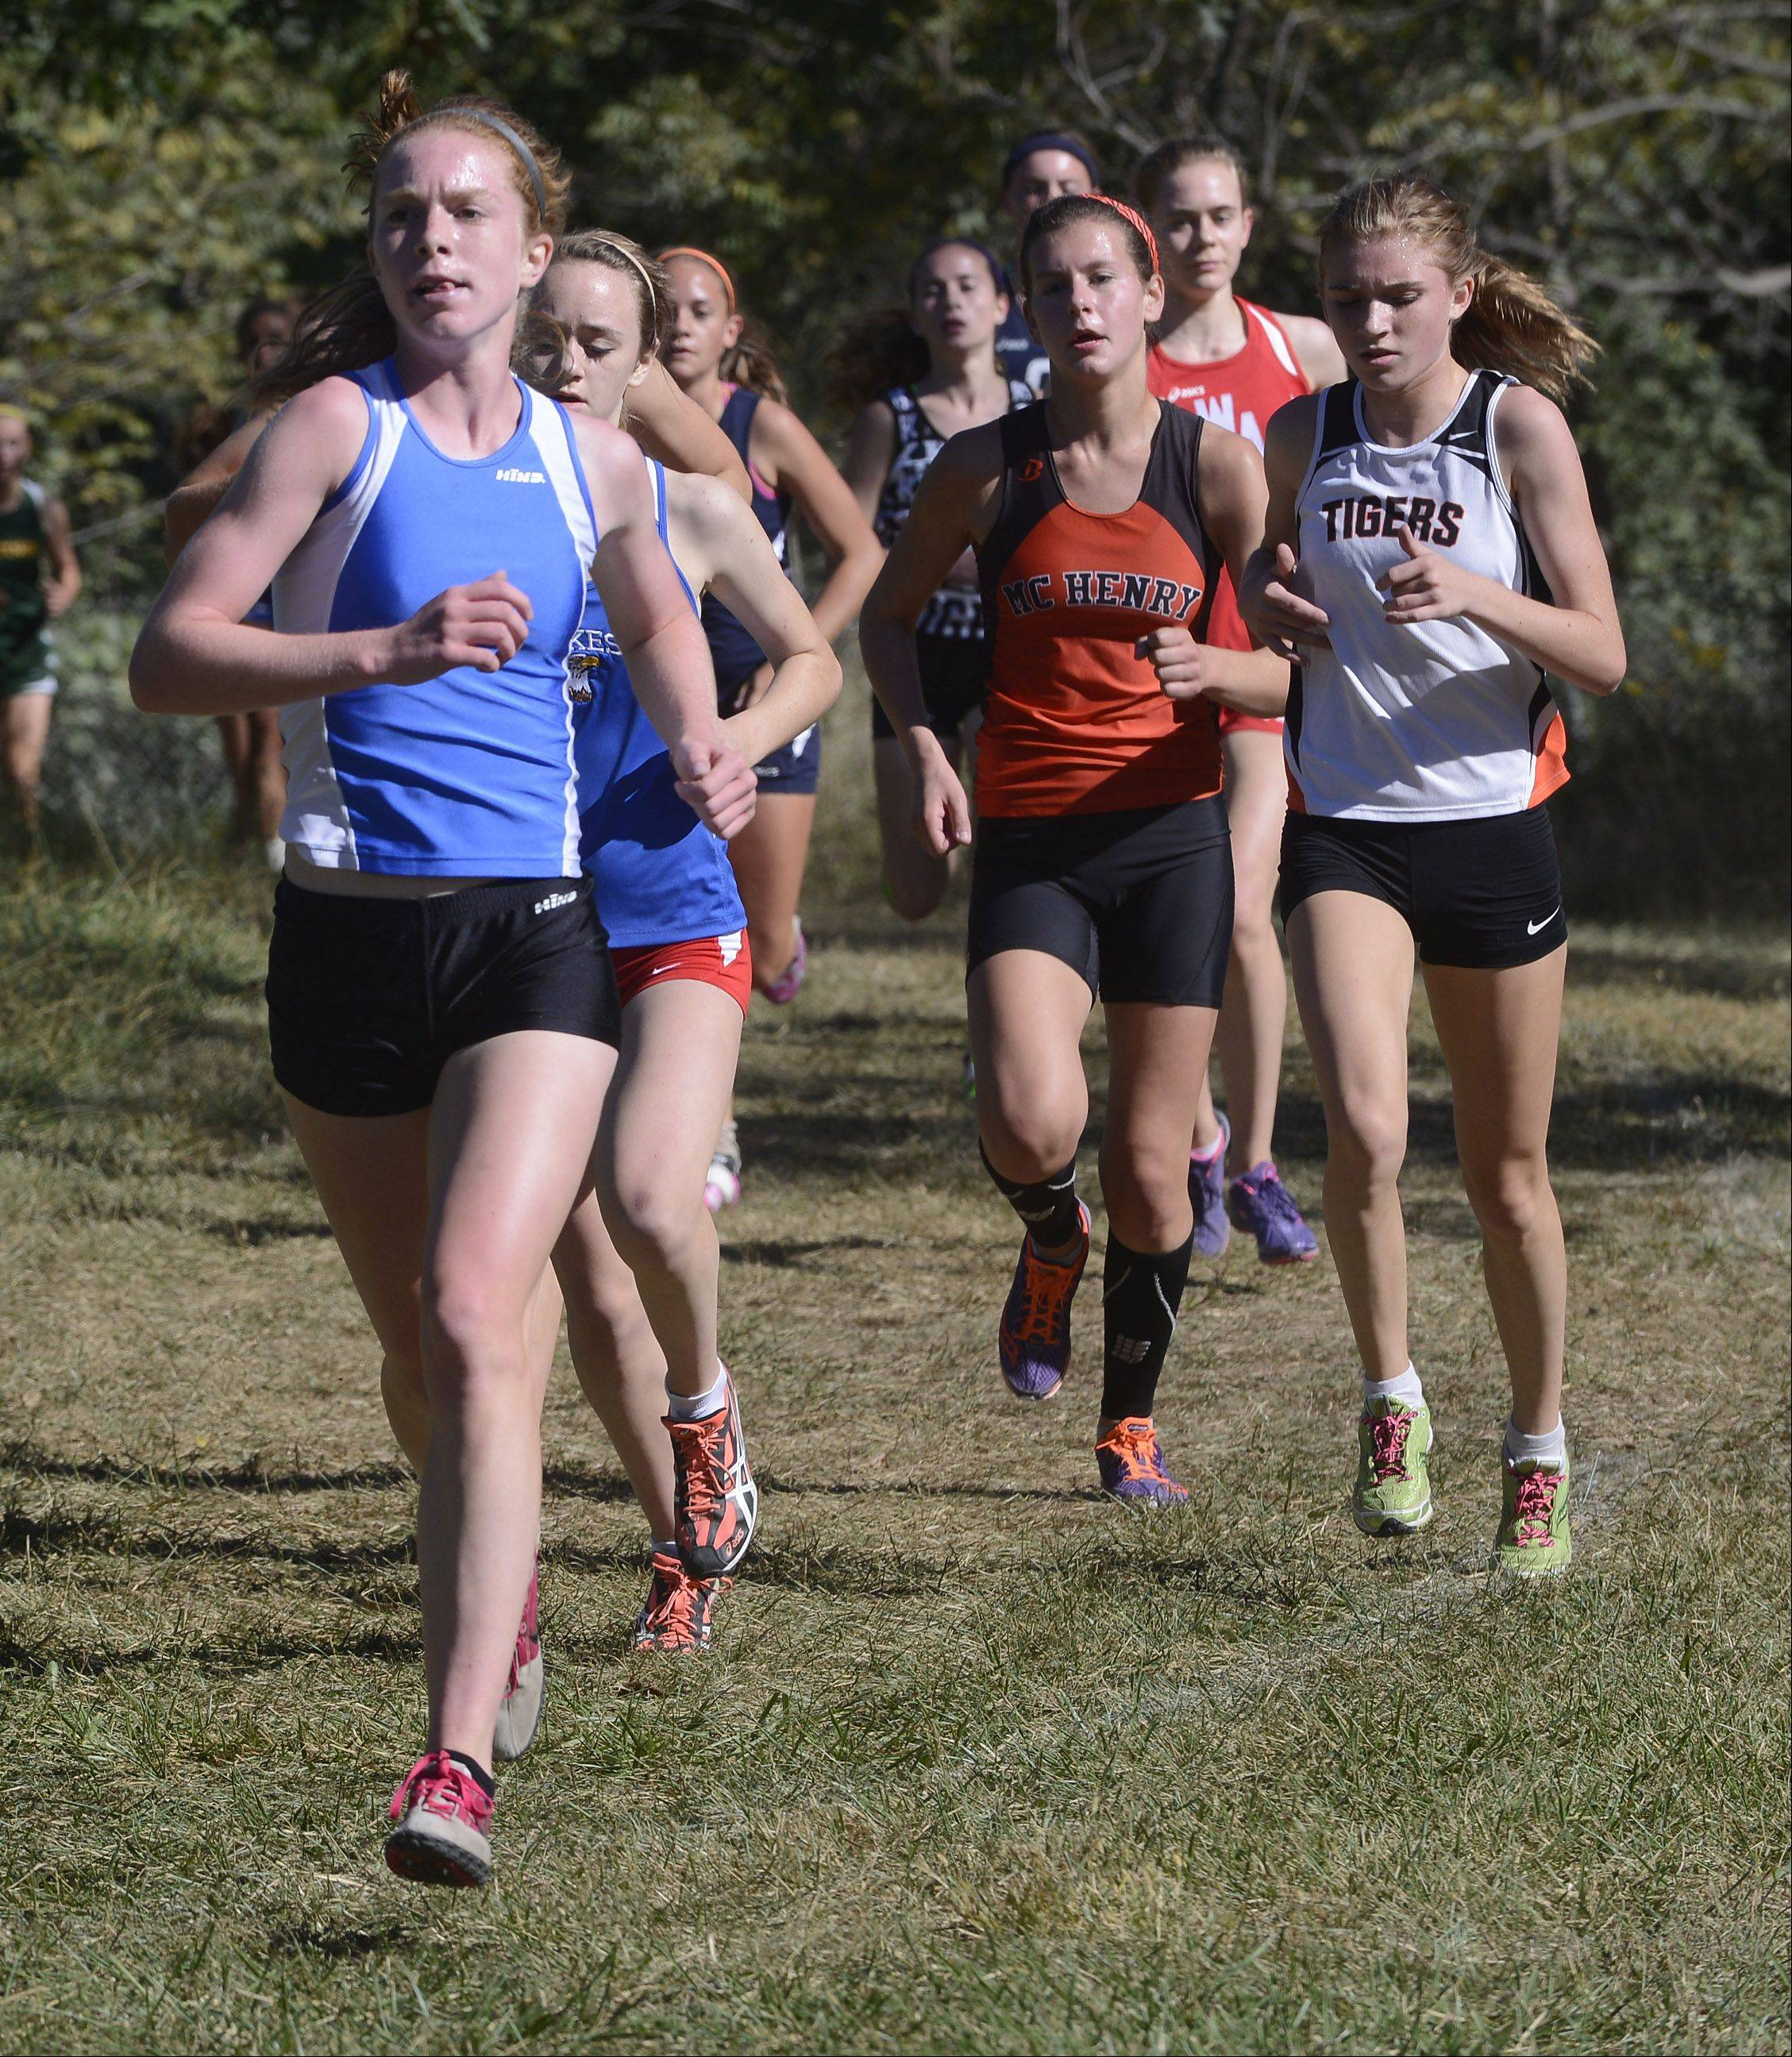 First-place finisher Meaghan Gelinas takes the lead during the Wauconda cross country invitational at Lakewood Forest Preserve on Saturday.